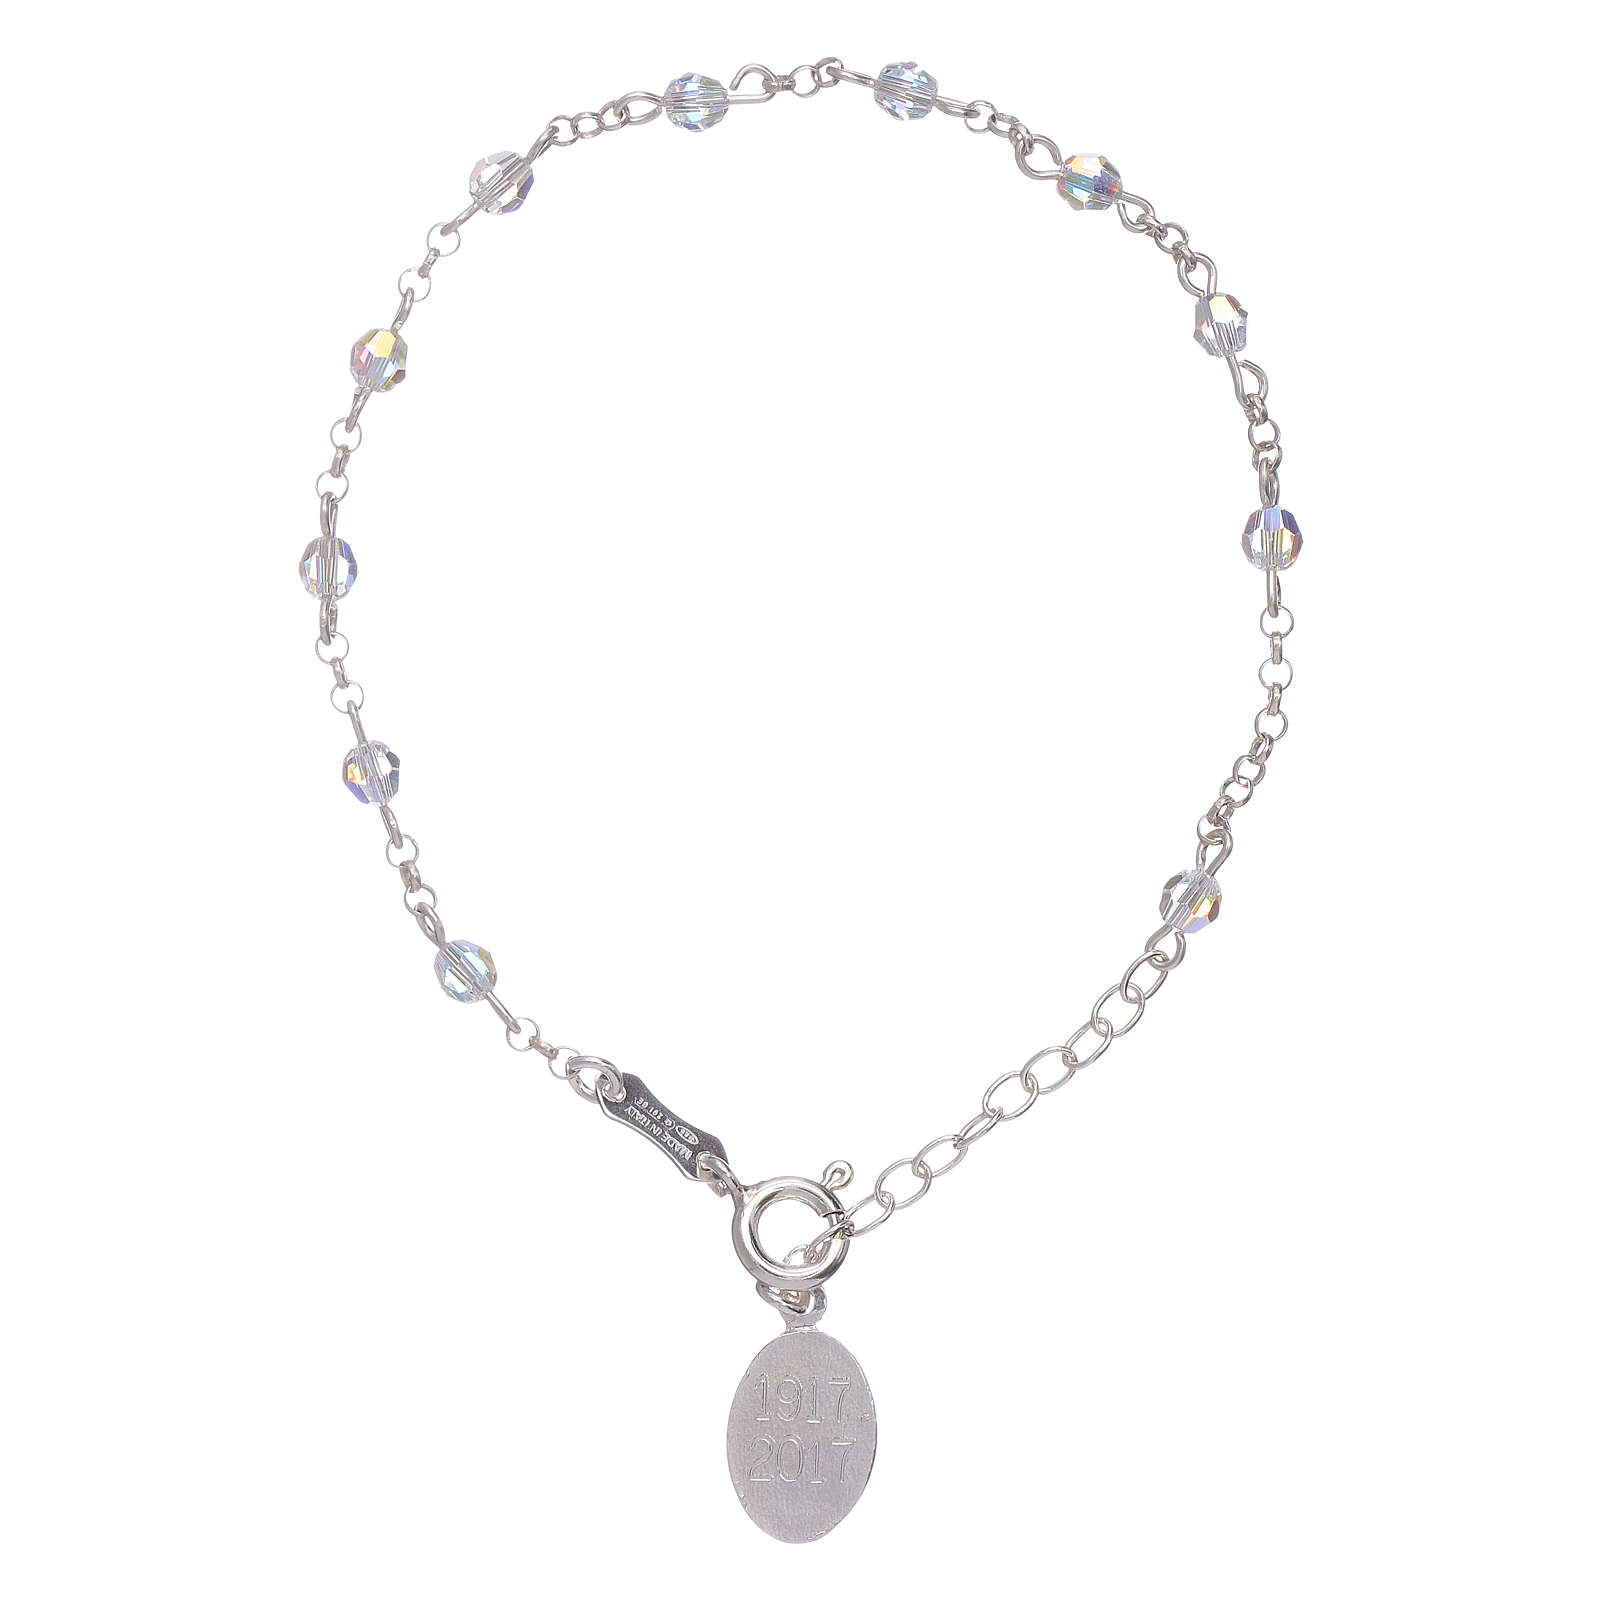 Bracelet in 925 sterling silver with Swarovski spheres Our Lady of Fatima 4